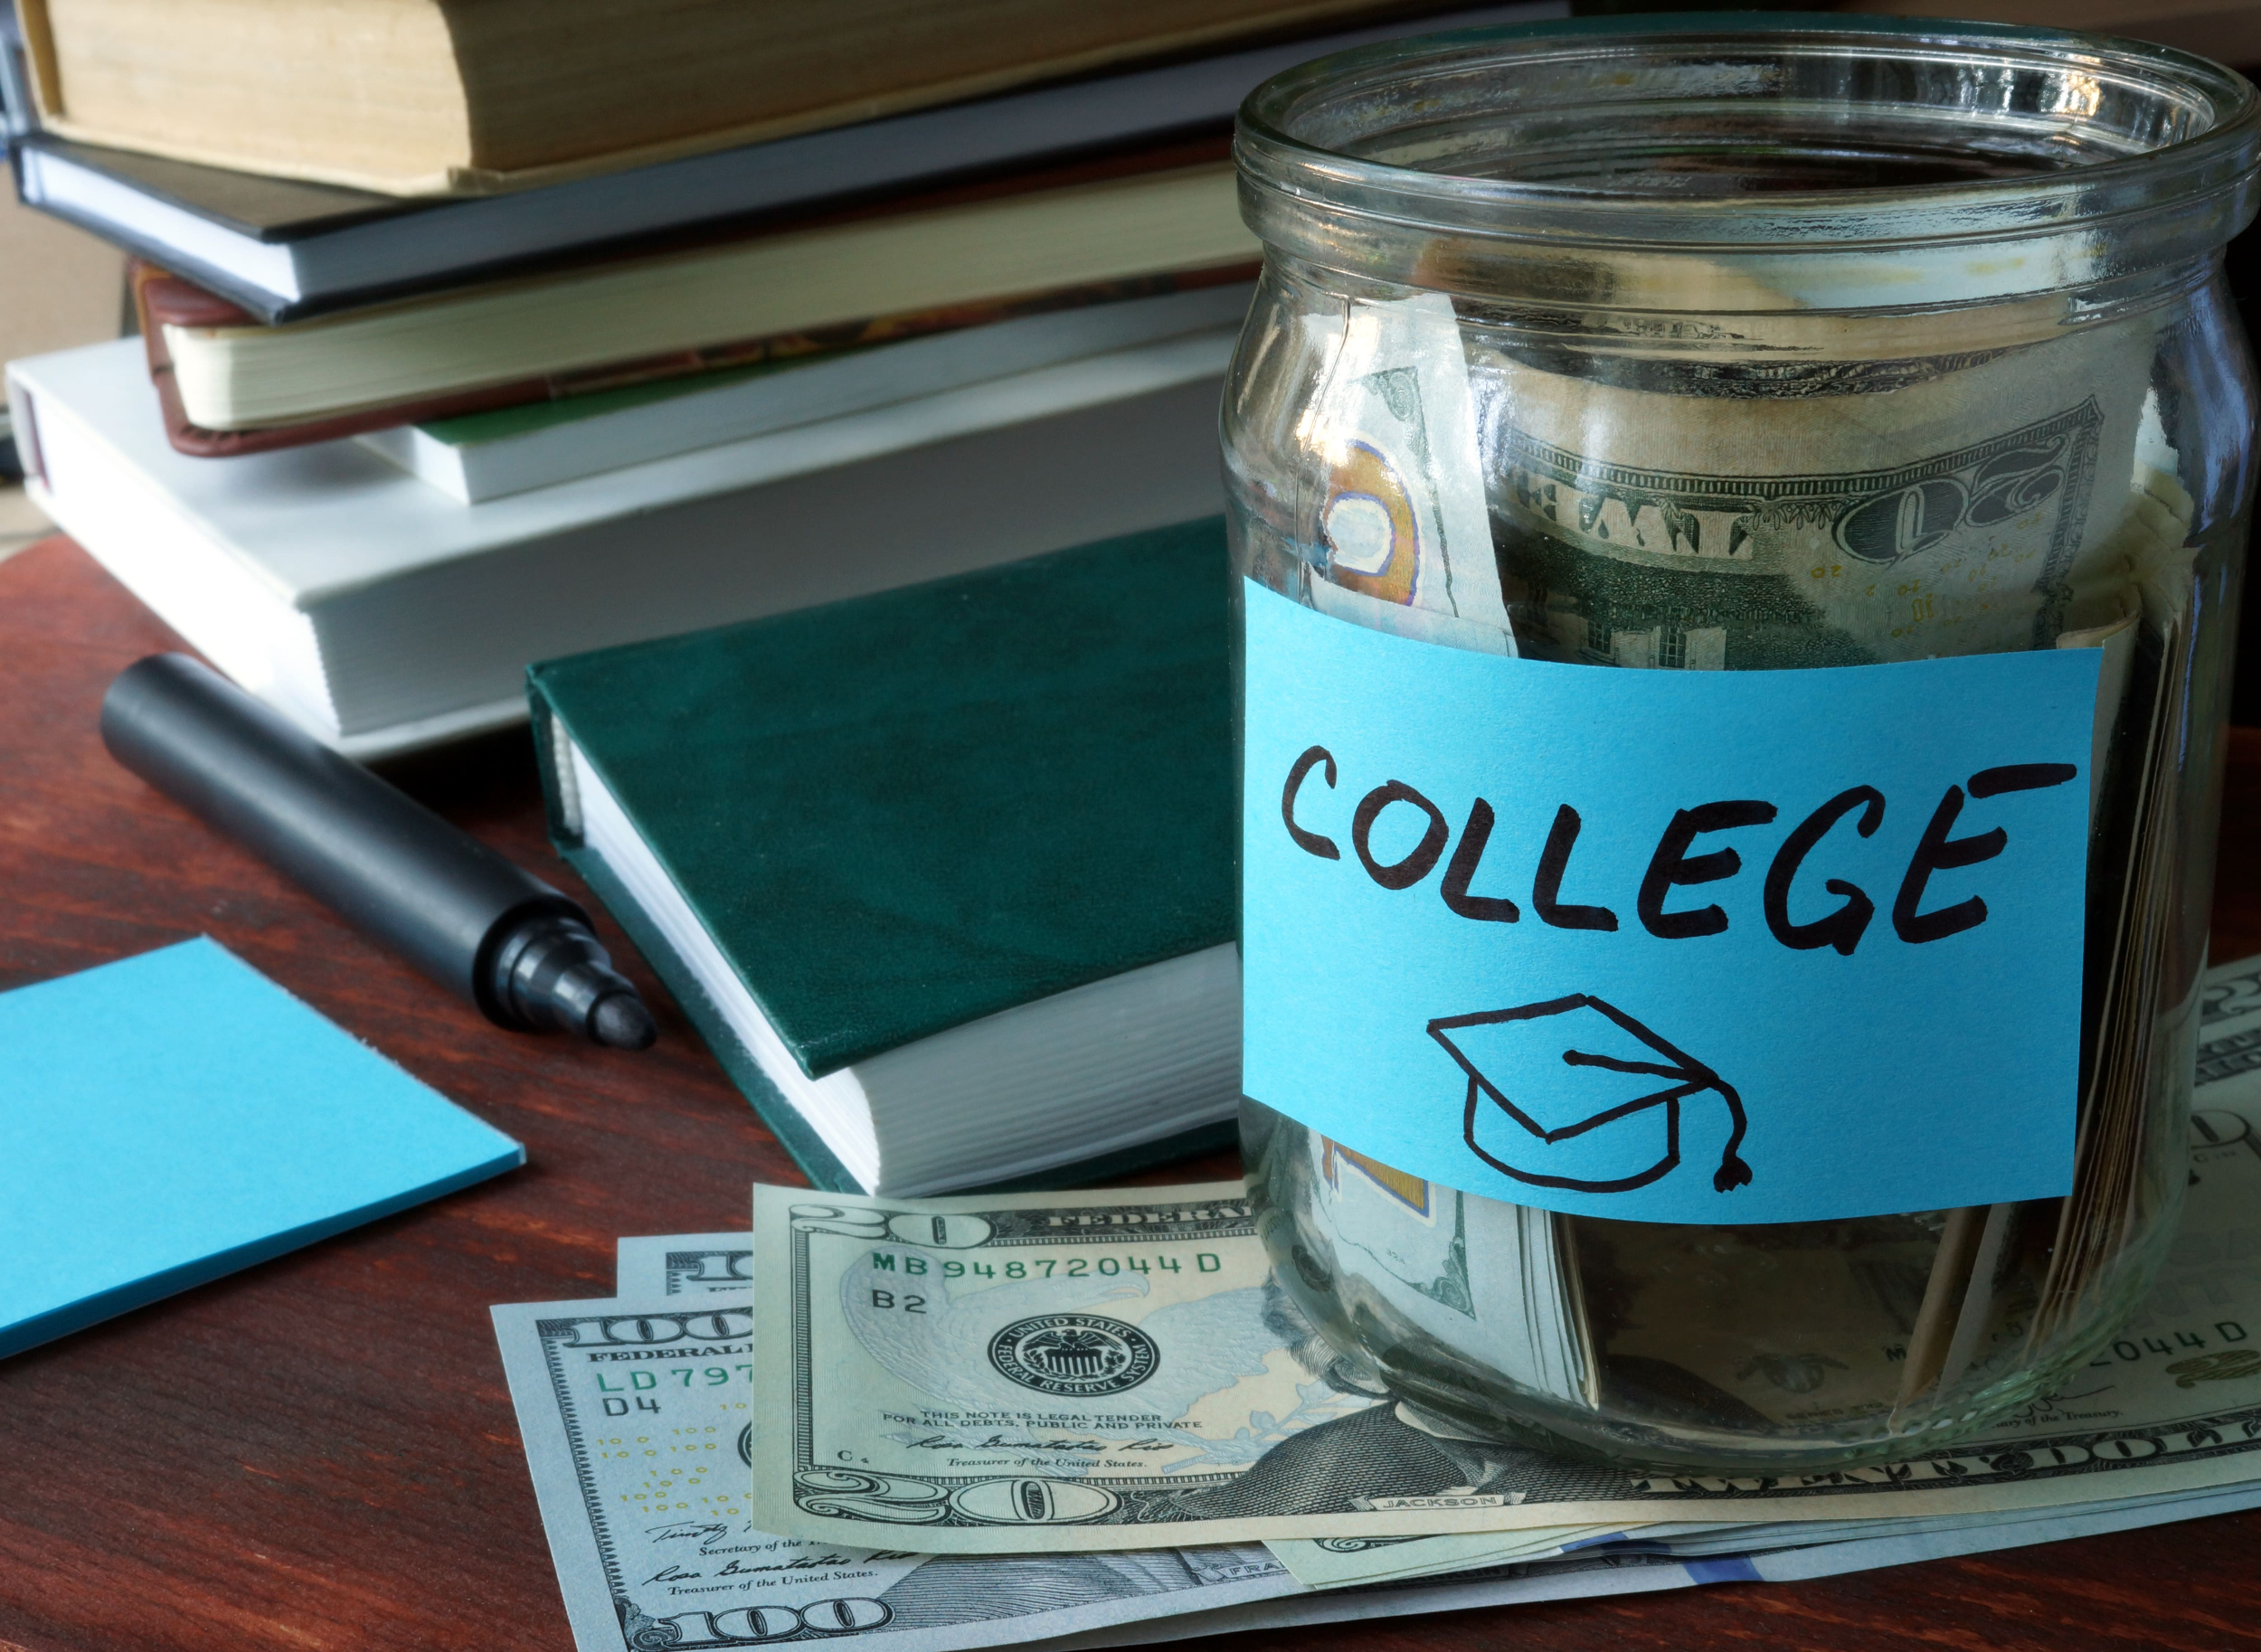 What To Look For In a College Savings Account